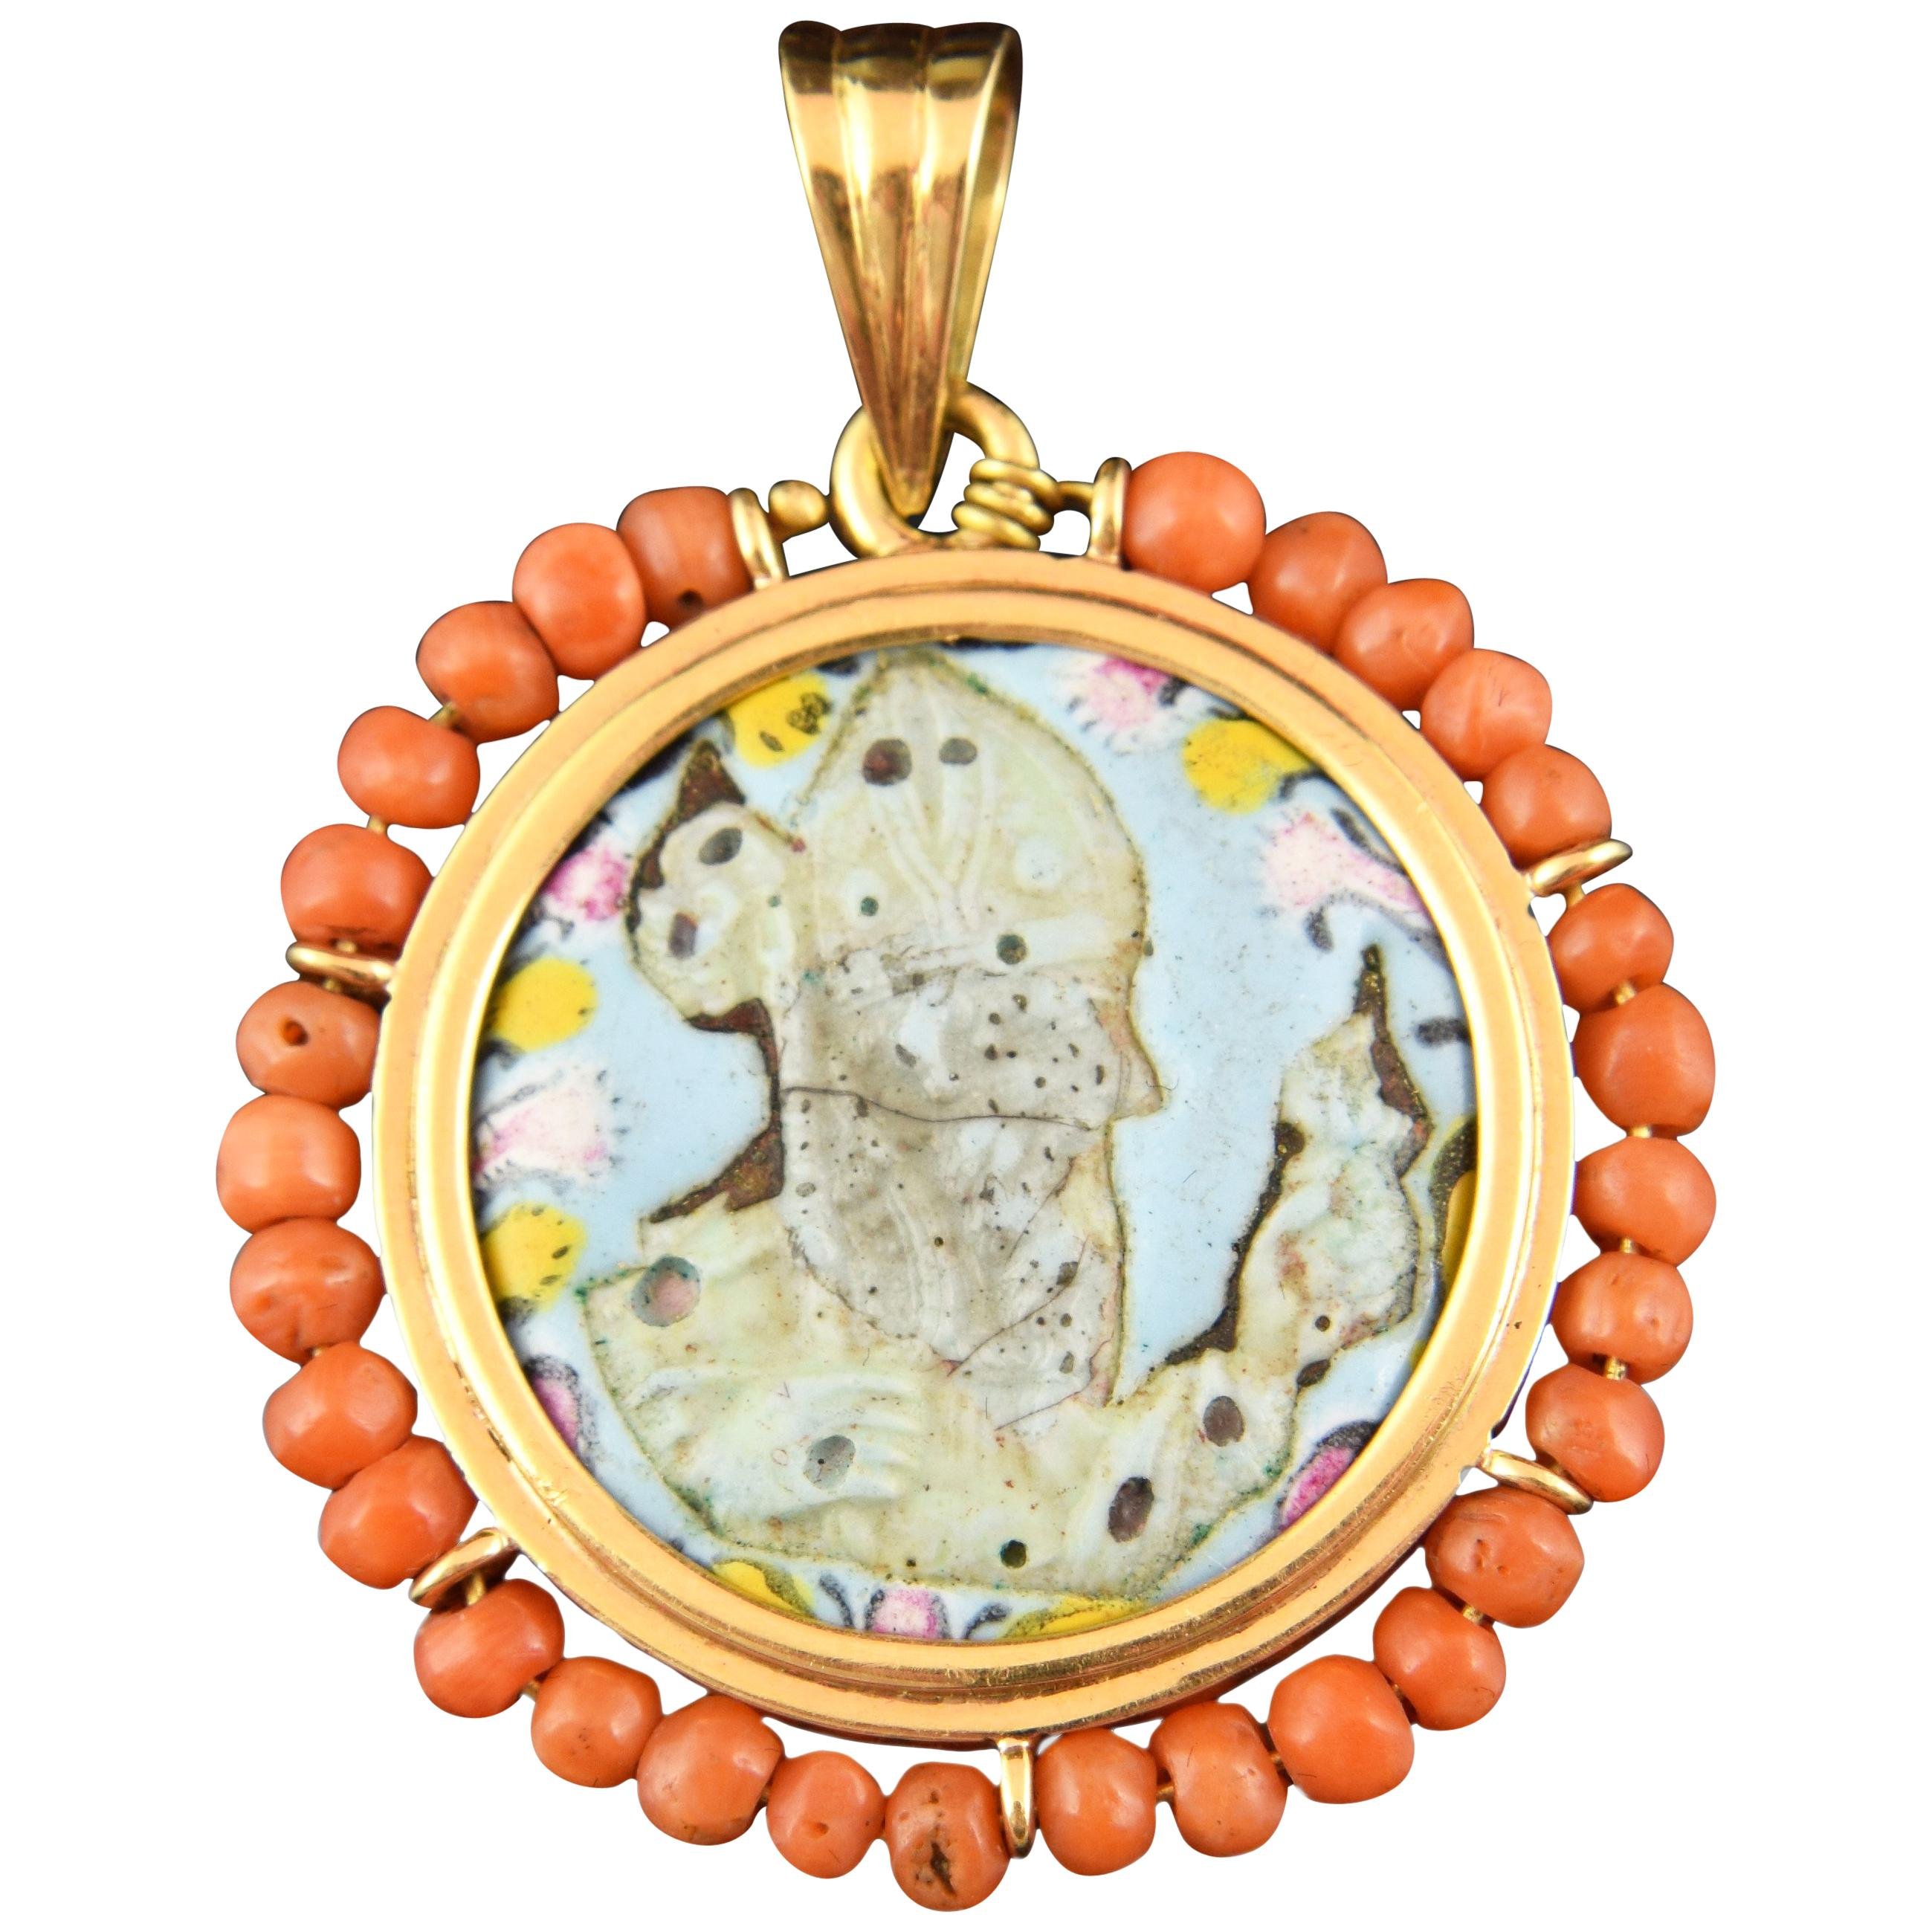 Devotional Pendant, Gold, Coral, Enamels, Possibly, 18th-19th Century